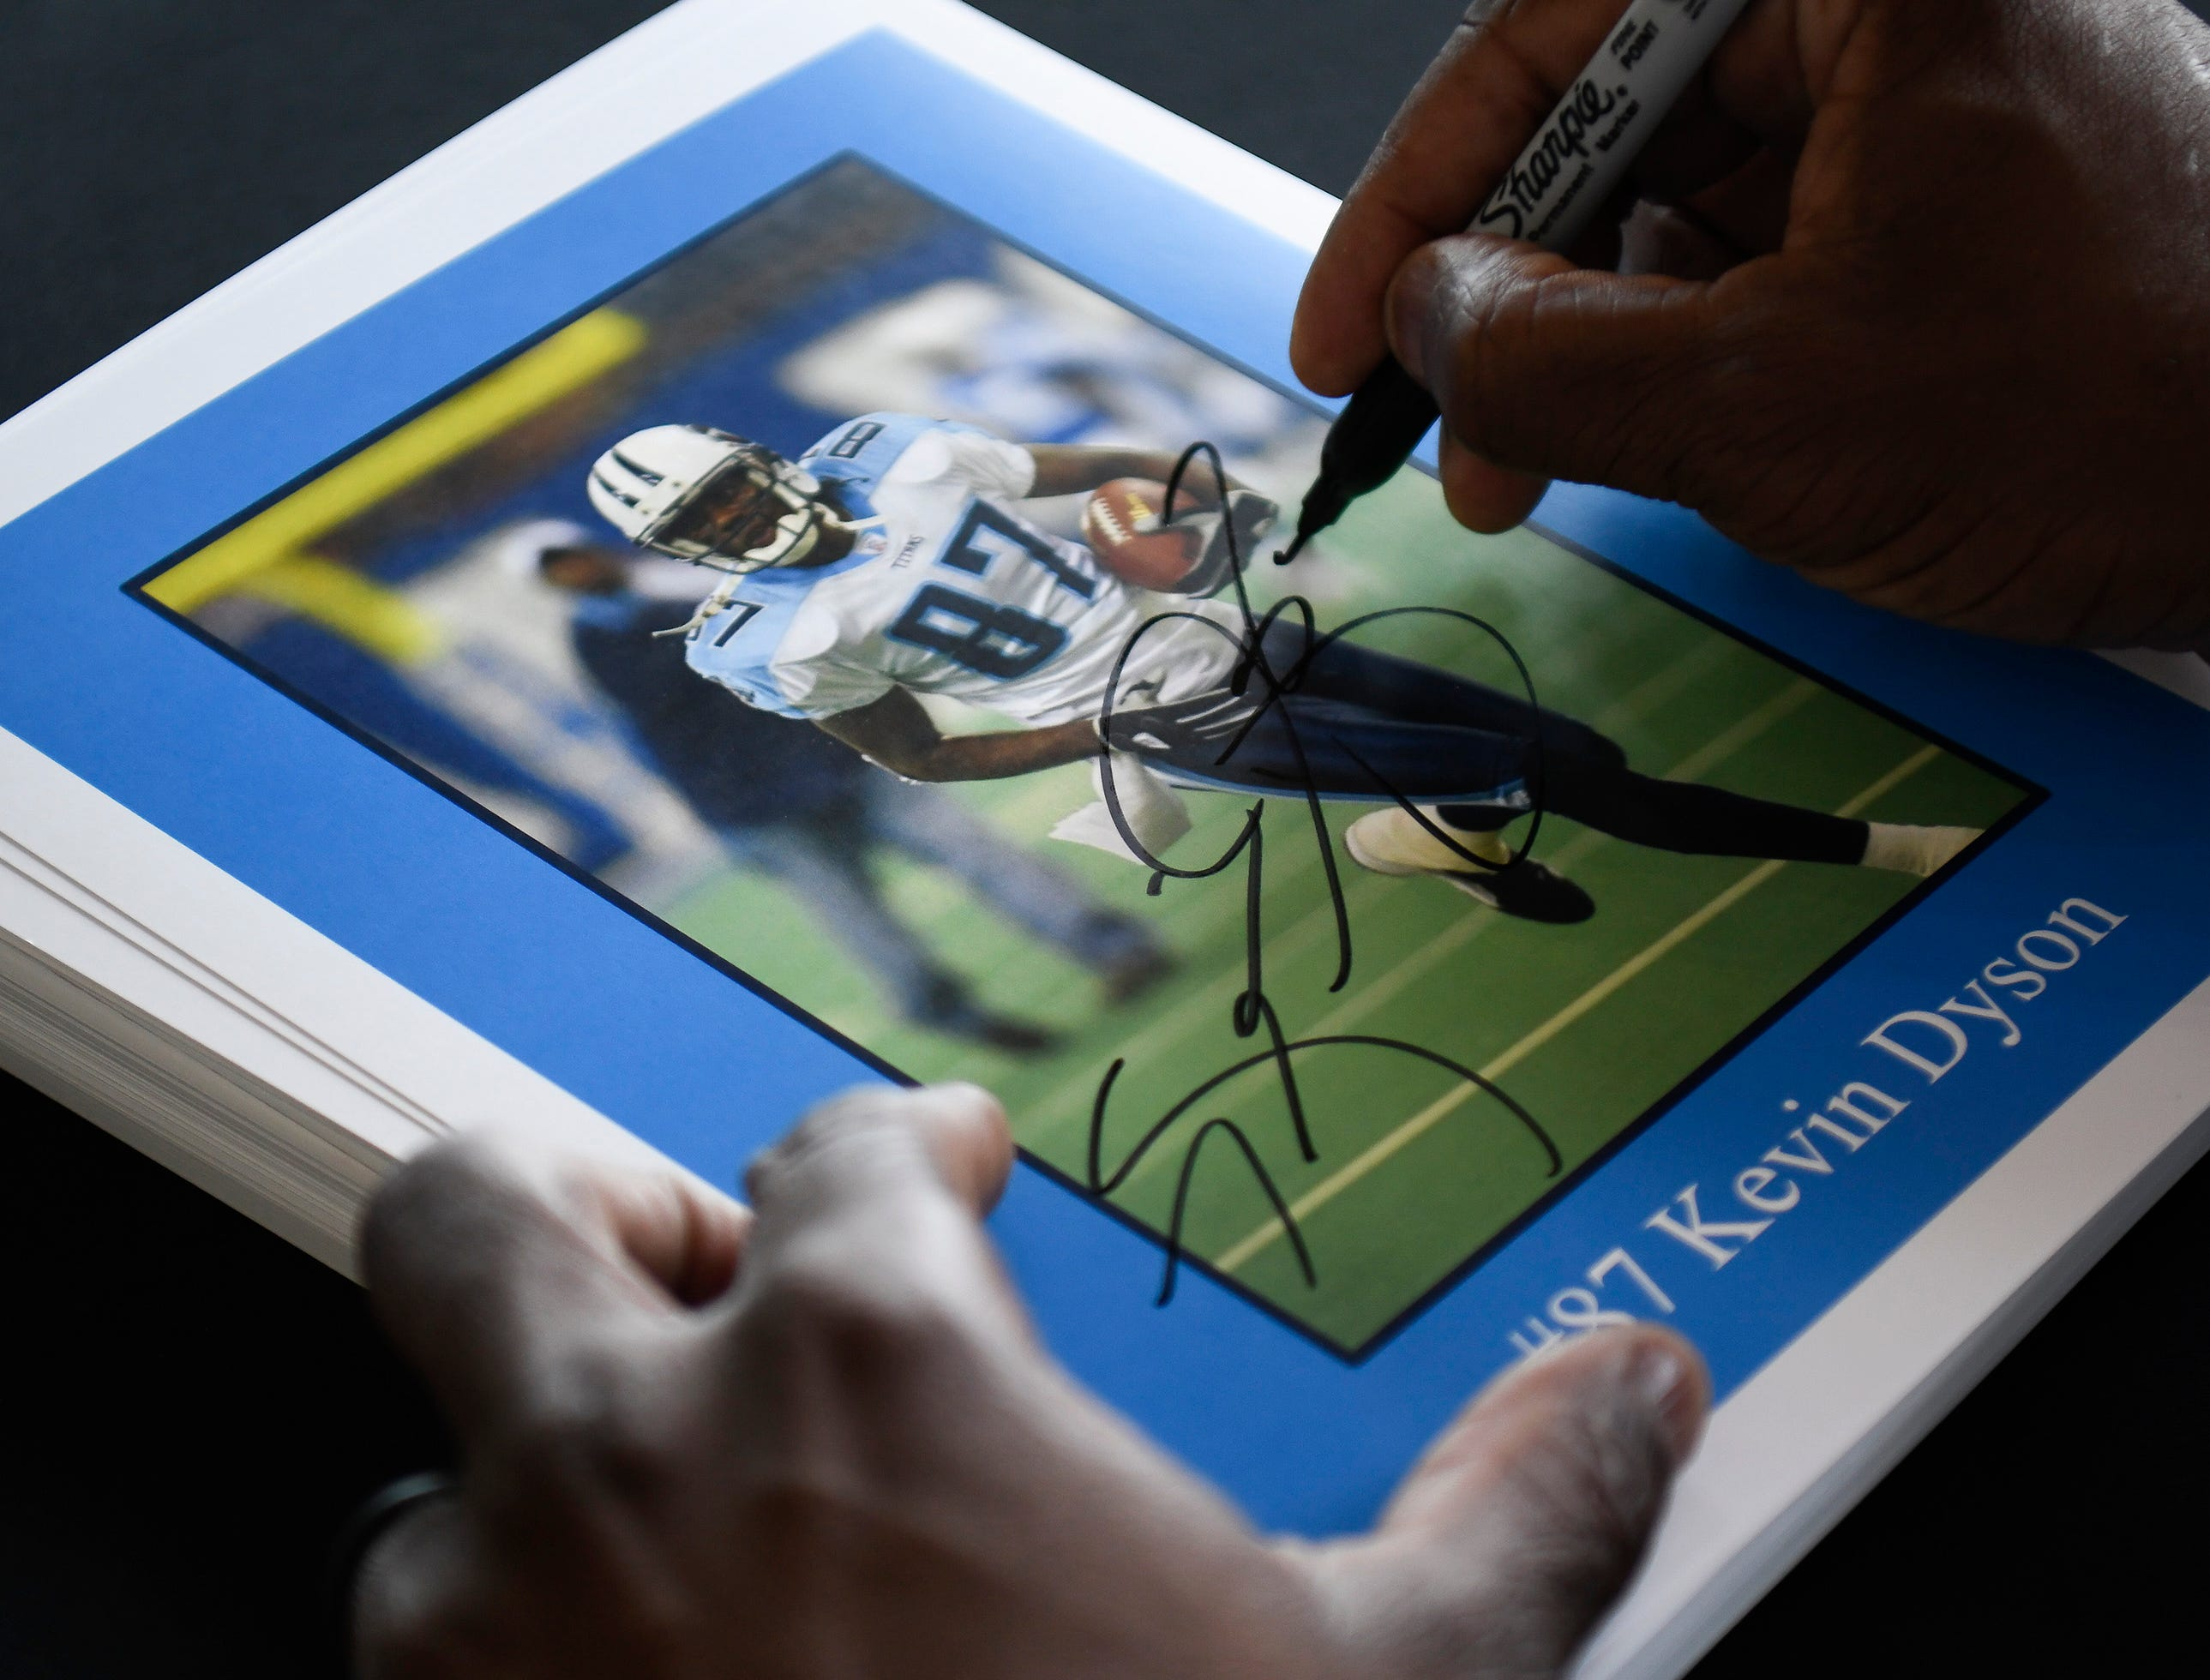 Former Titans wide receiver Kevin Dyson signs autographs for fans during a corporate event at Nissan Stadium Thursday, July 12, 2018, in Nashville, Tenn. Dyson has recently earned his PhD in education from Trevecca University.